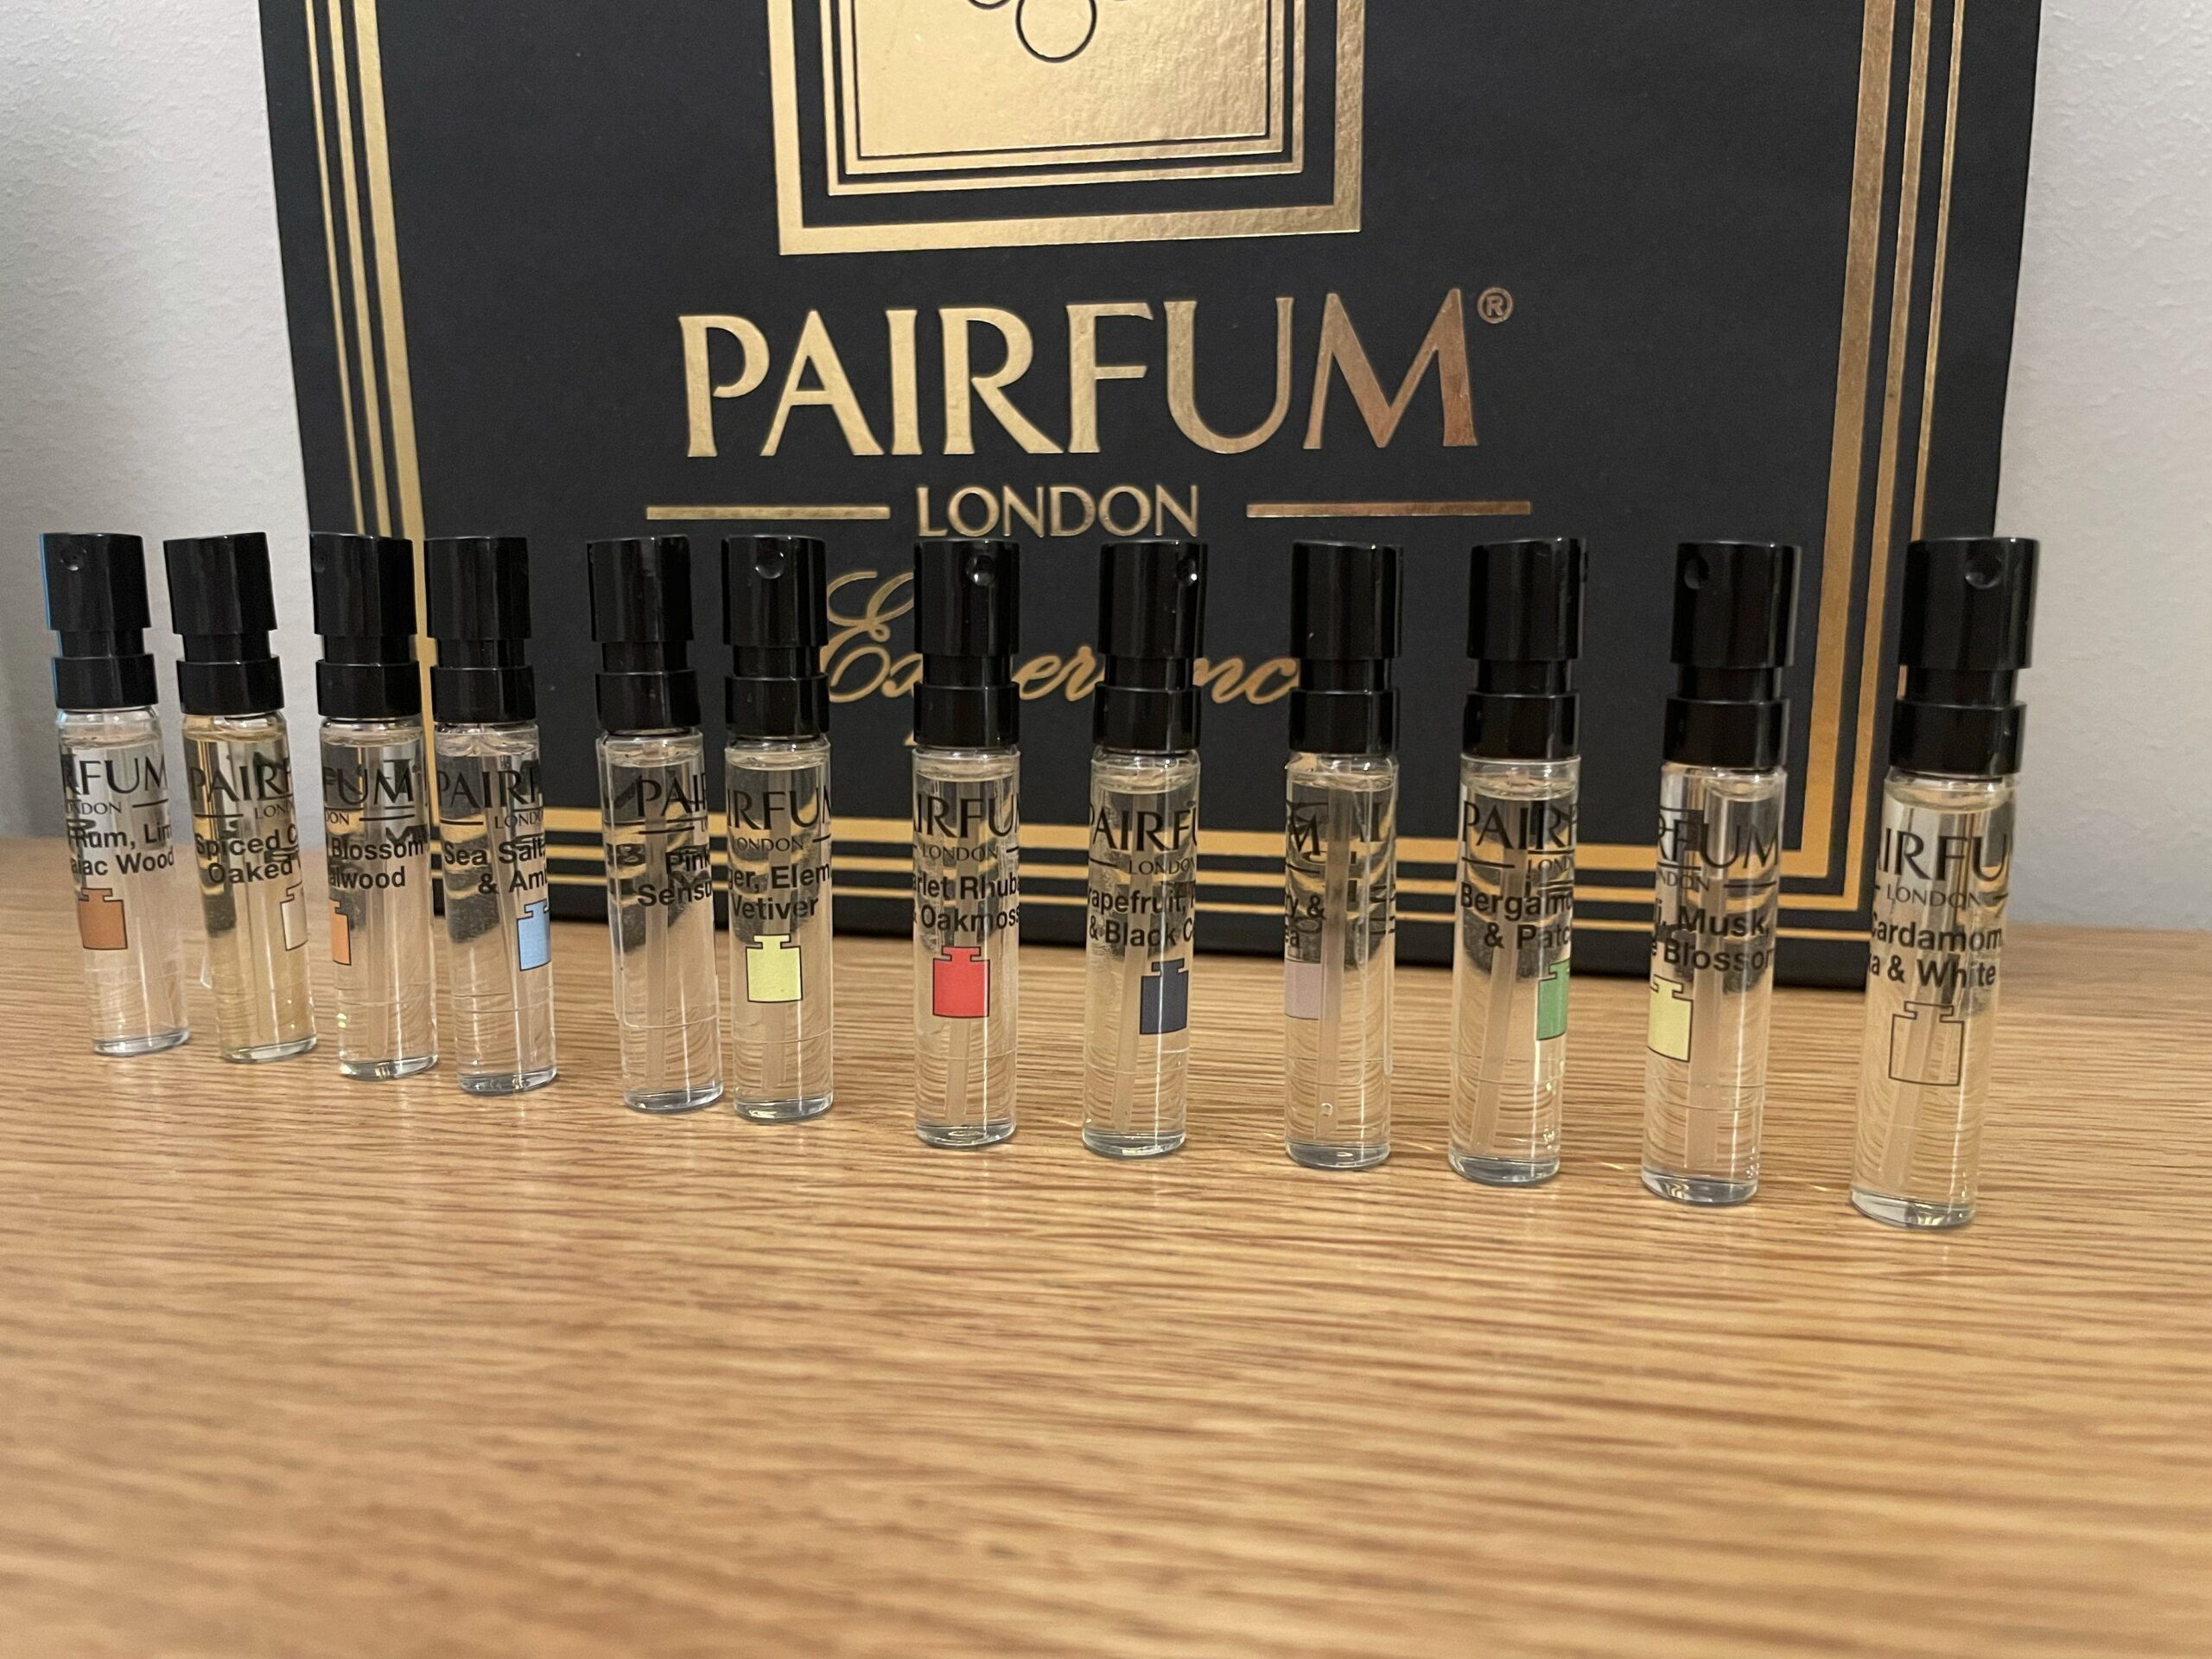 Introducing the Pairfum London Fragrance Library Perfume Experience Box